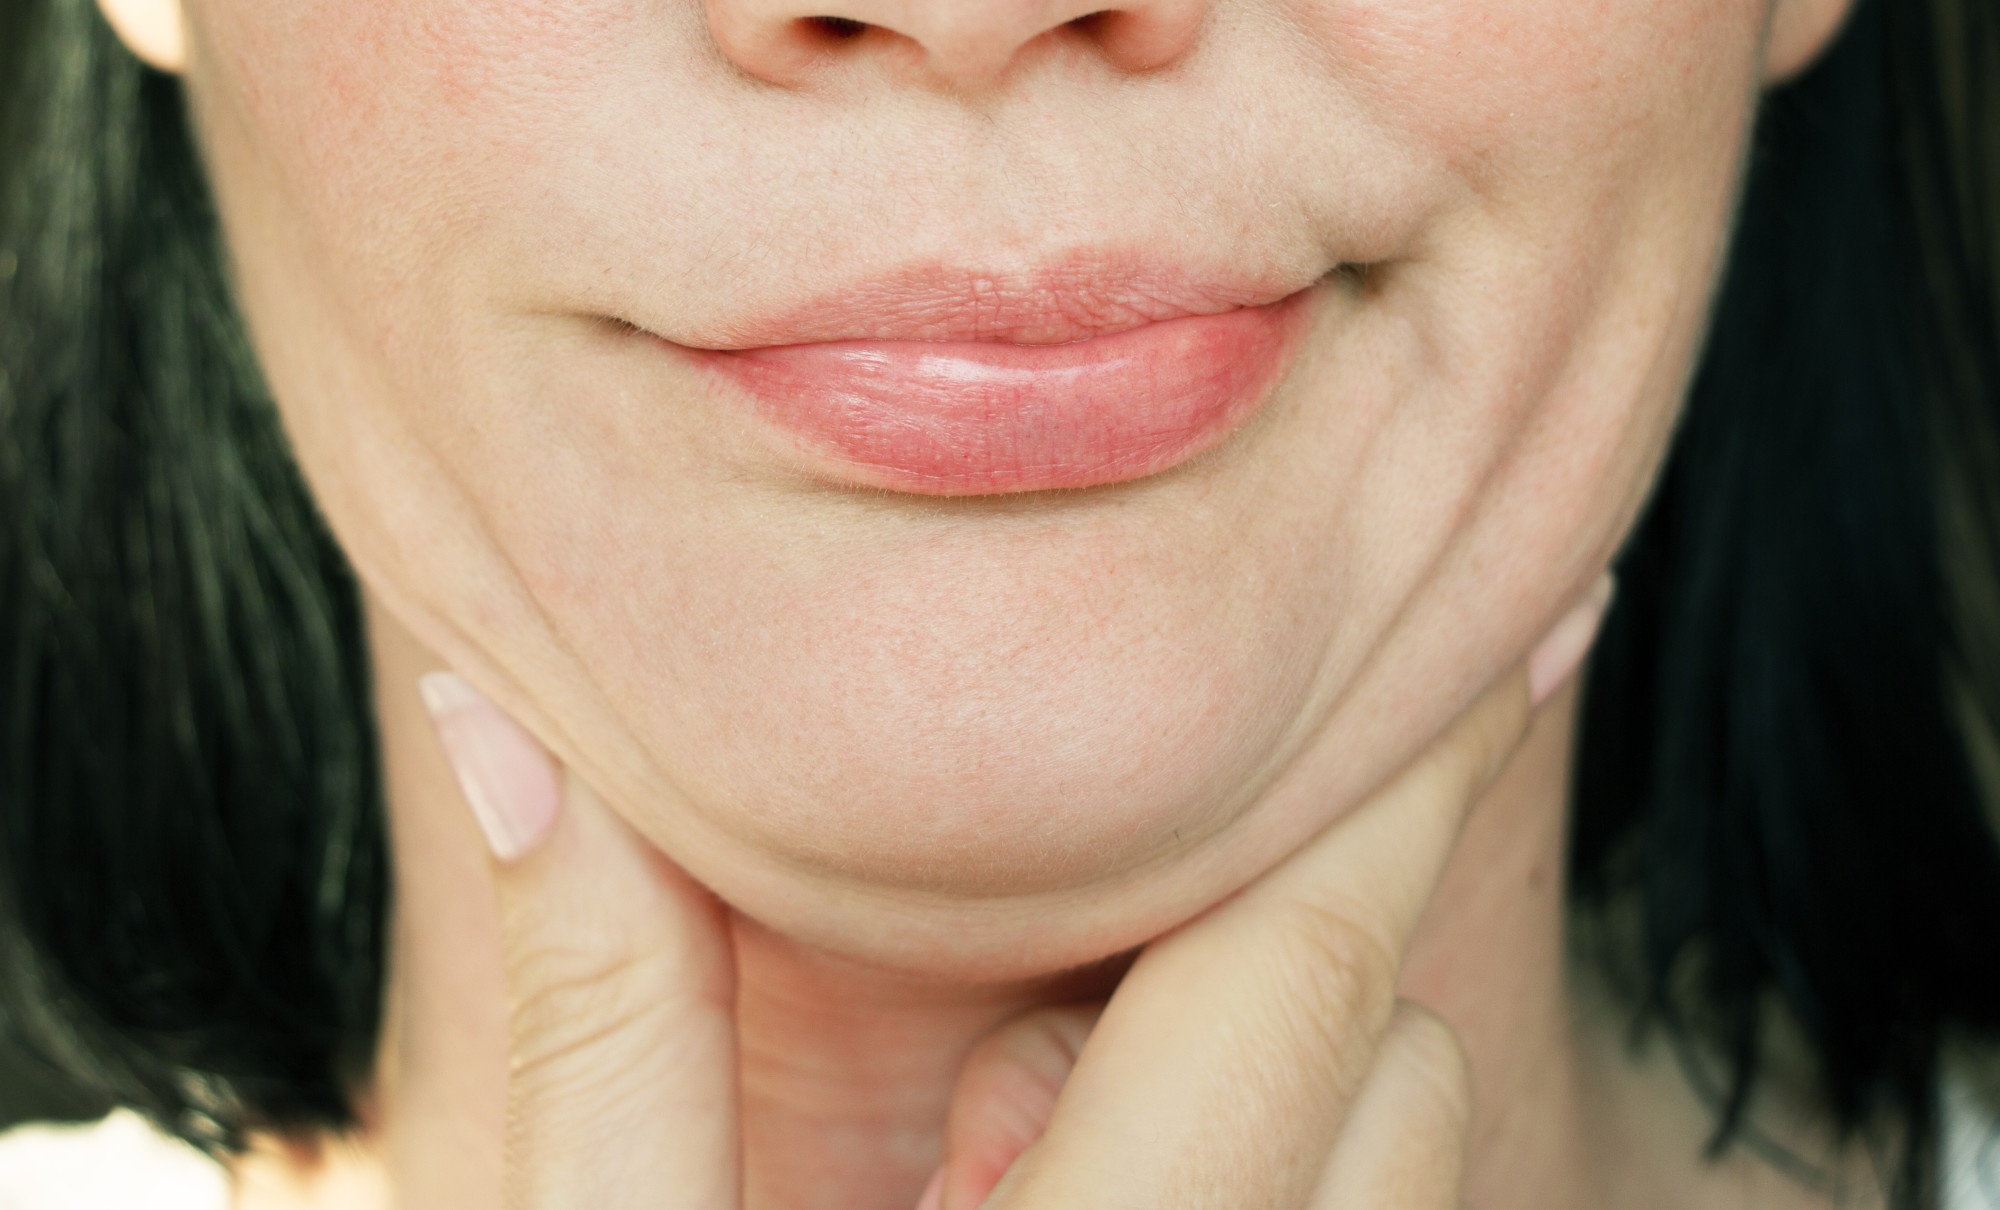 A Definitive Guide on How to Get Rid of a Double Chin